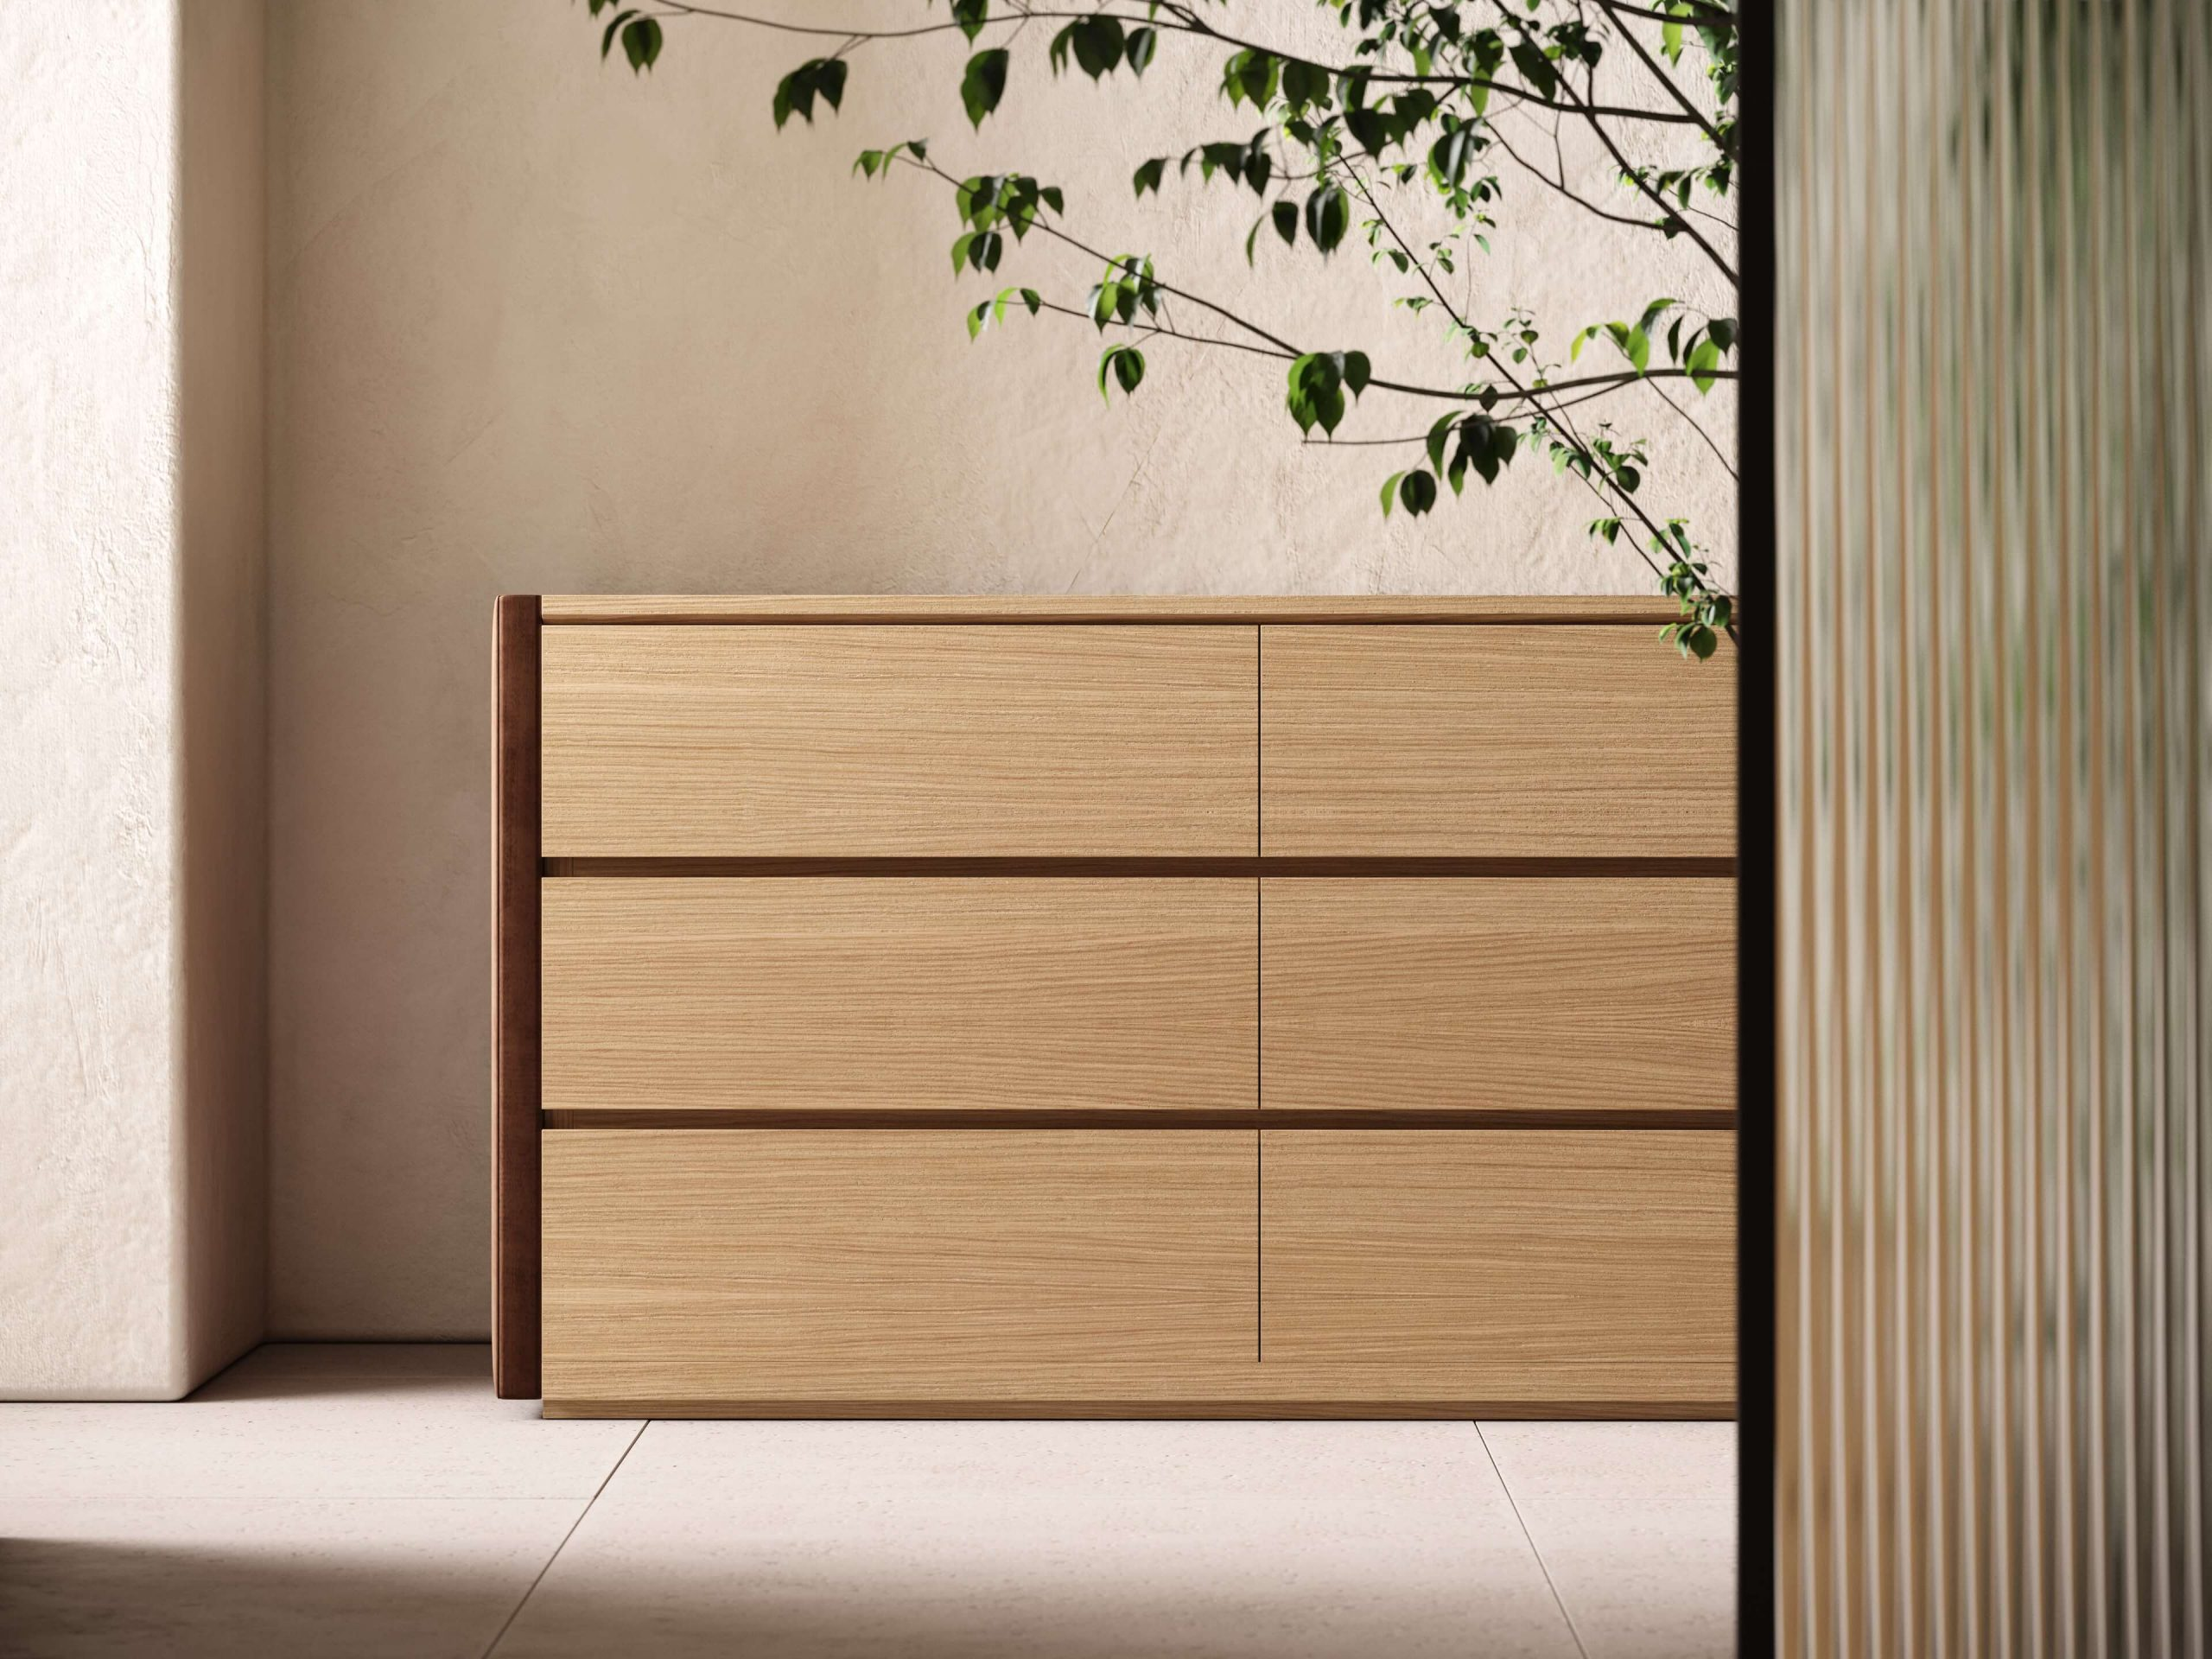 comoda-taylor-master-bedroom-furniture-wood-velvet-6-drawers-storage-domkapa-6